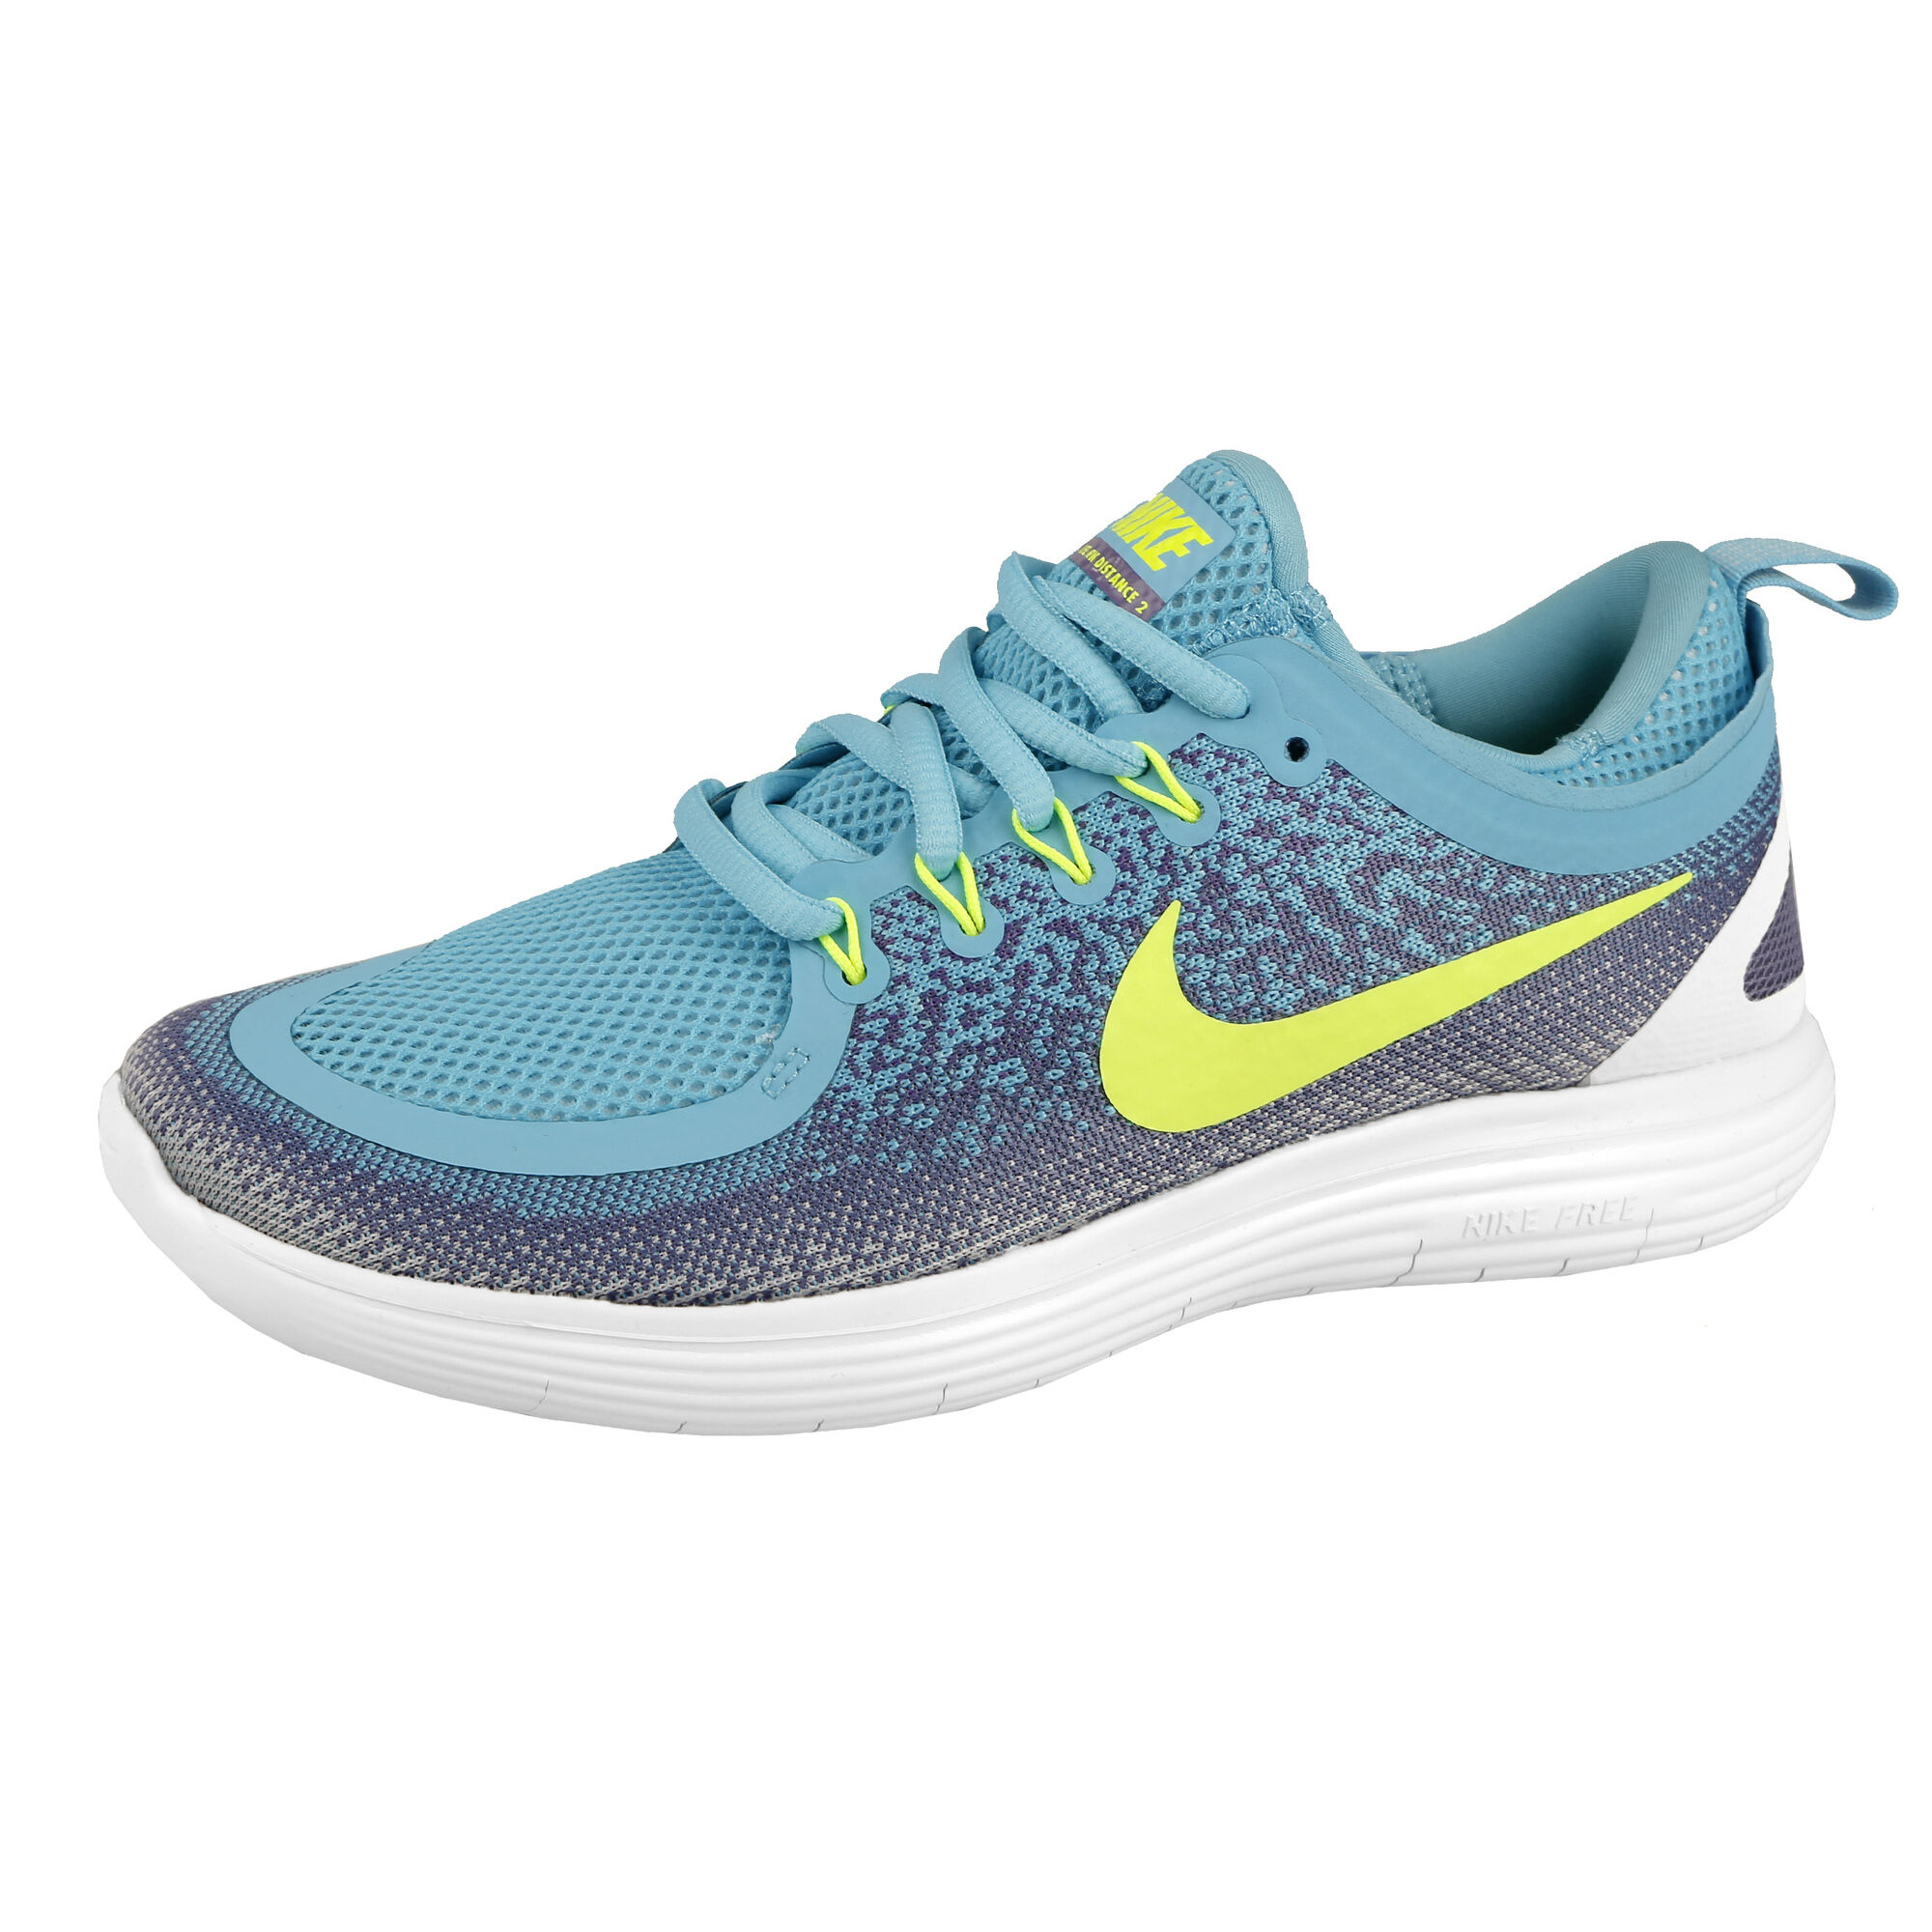 low priced 8fdd4 55741 Nike Free RN Distance 2 Natural Running Shoe Women - Light Blue, Lemon